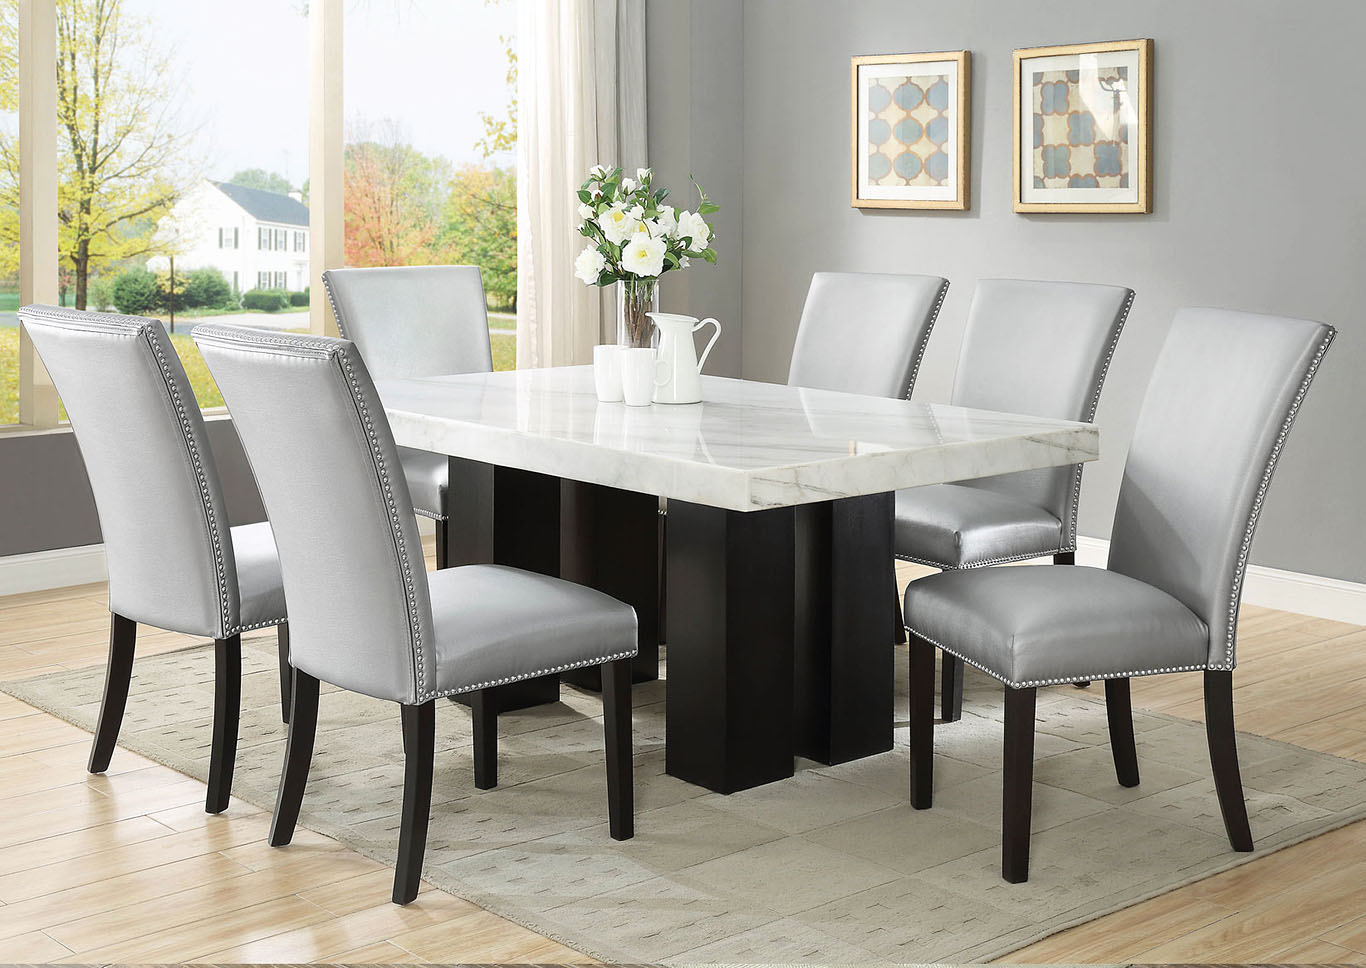 Camila Brown Rectangular Marble Top Dining Set W 6 Chairs Silver Pu Ivan Smith